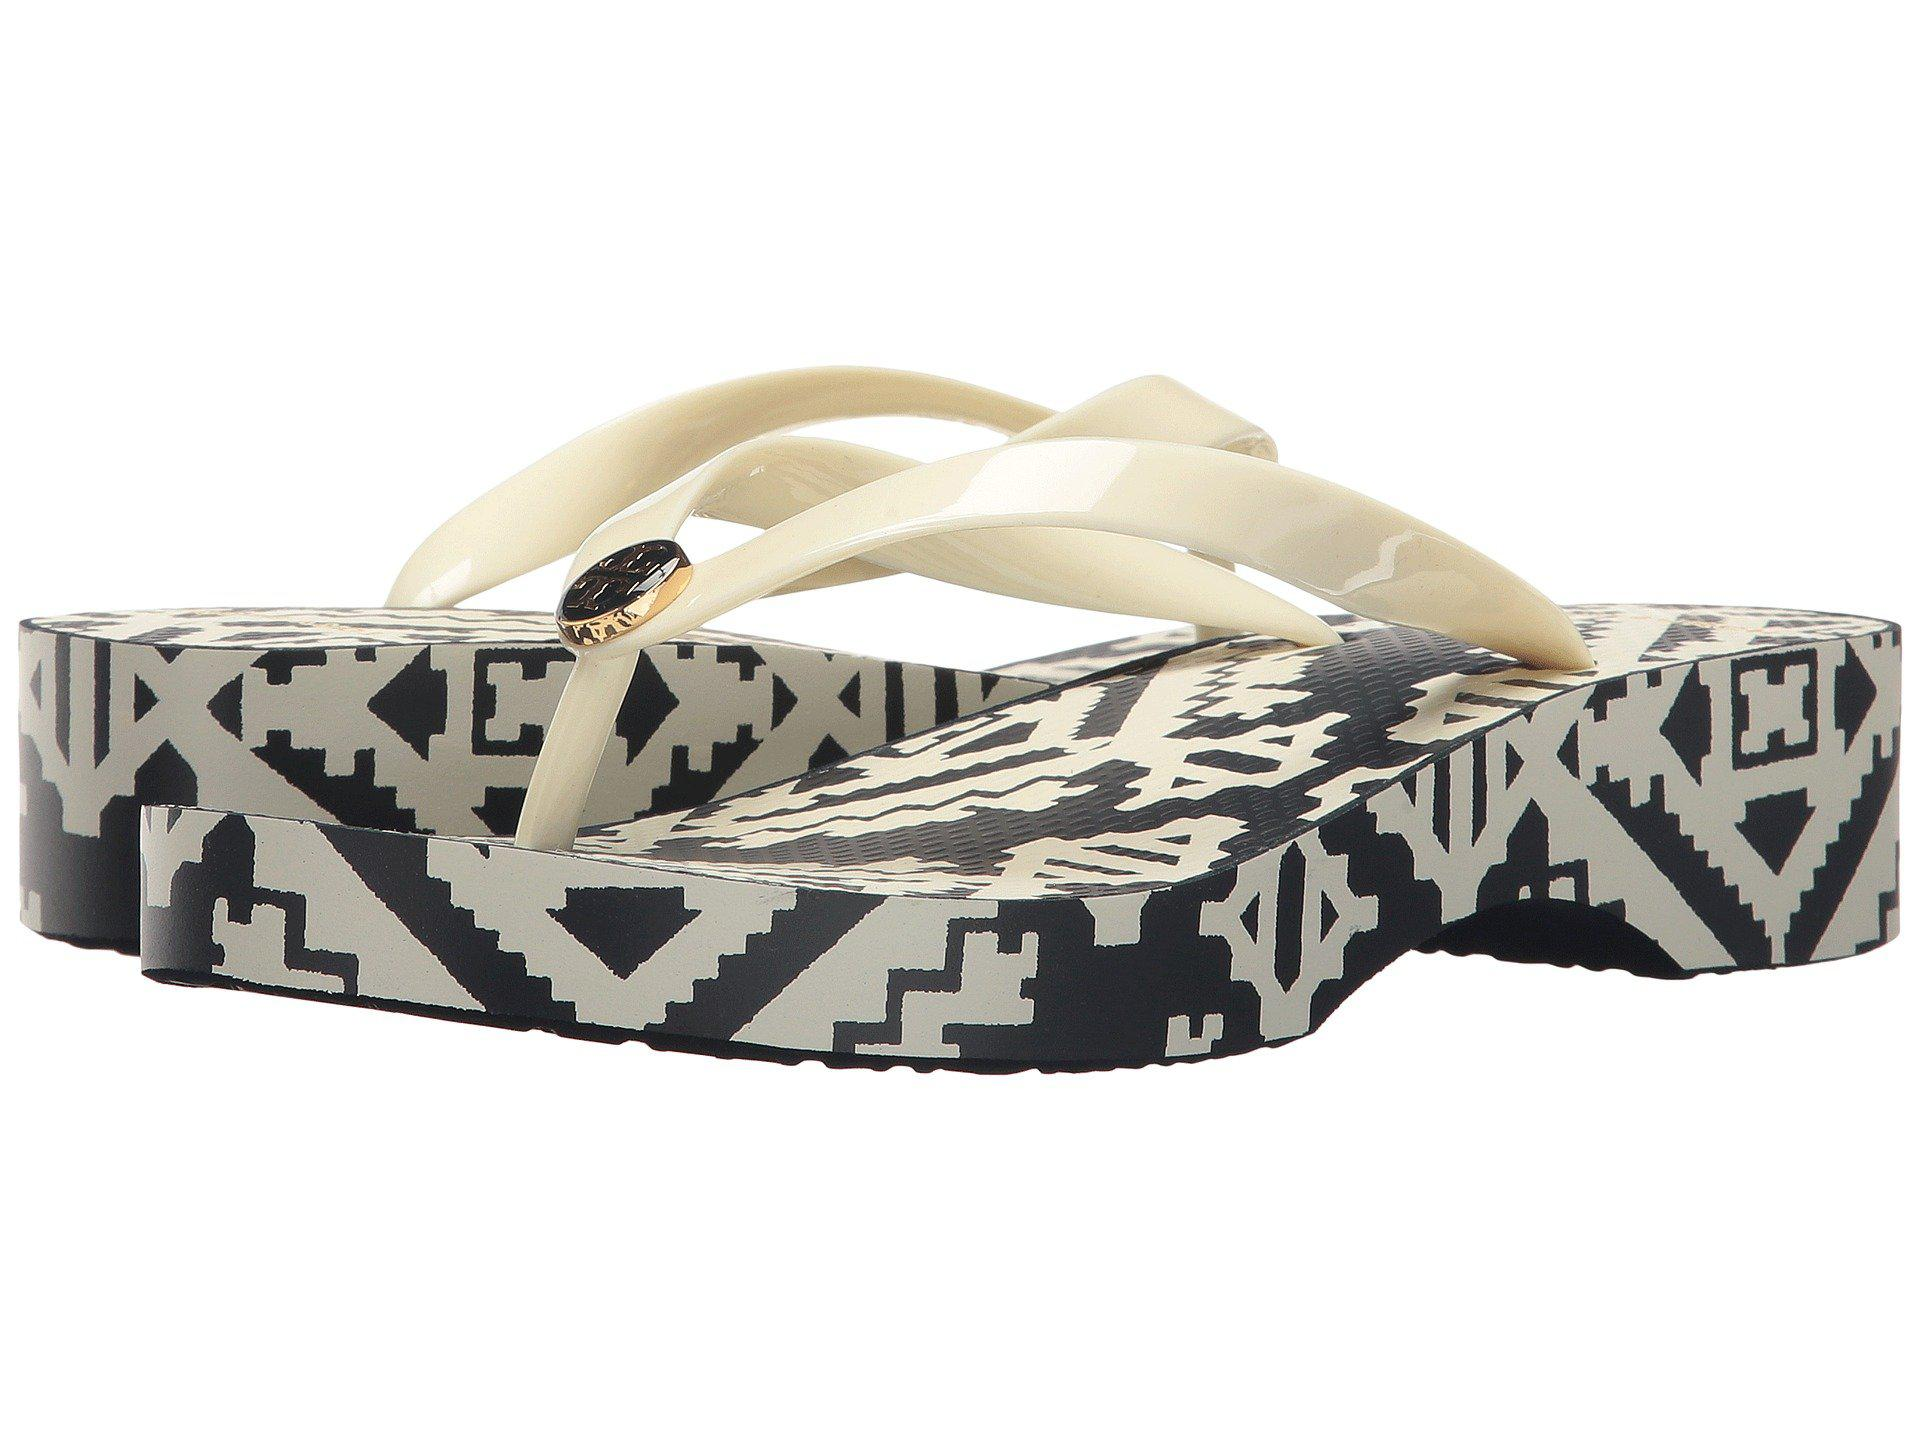 5252c9f1b7b228 Tory Burch - Multicolor Wedge Flip-flop - Lyst. View fullscreen